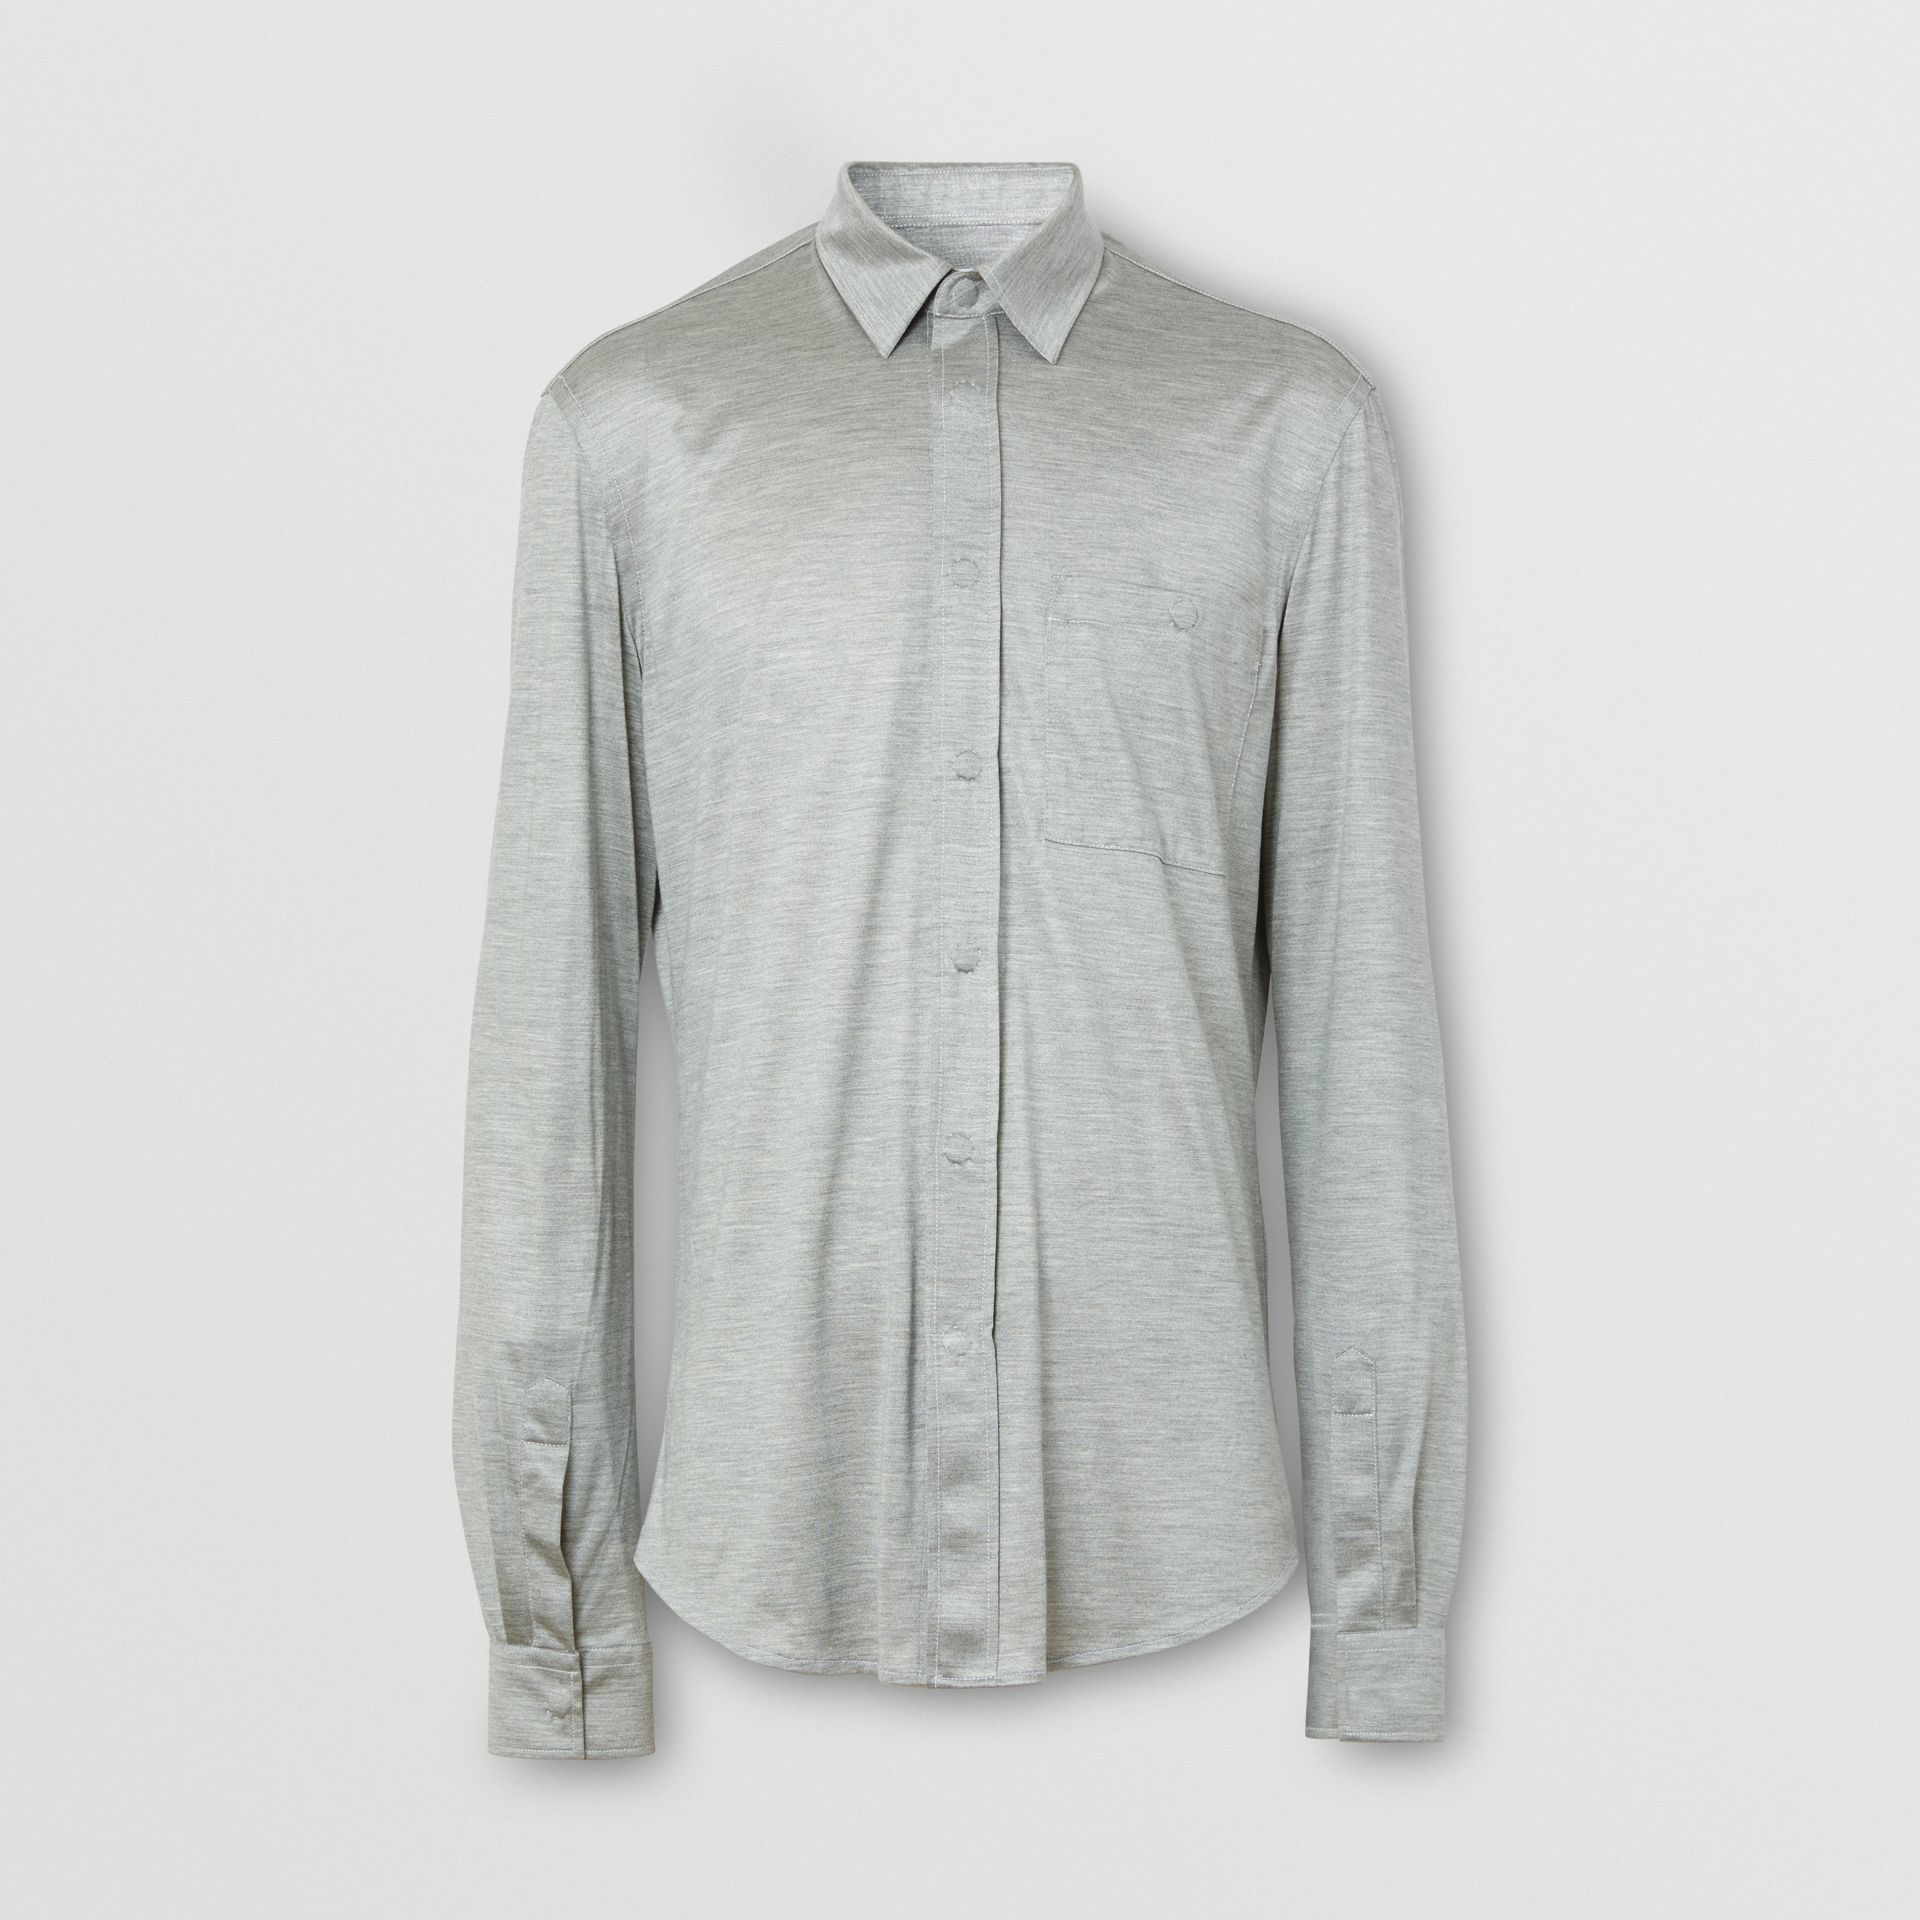 Classic Fit Silk Jersey Shirt in Light Pebble Grey | Burberry - gallery image 3